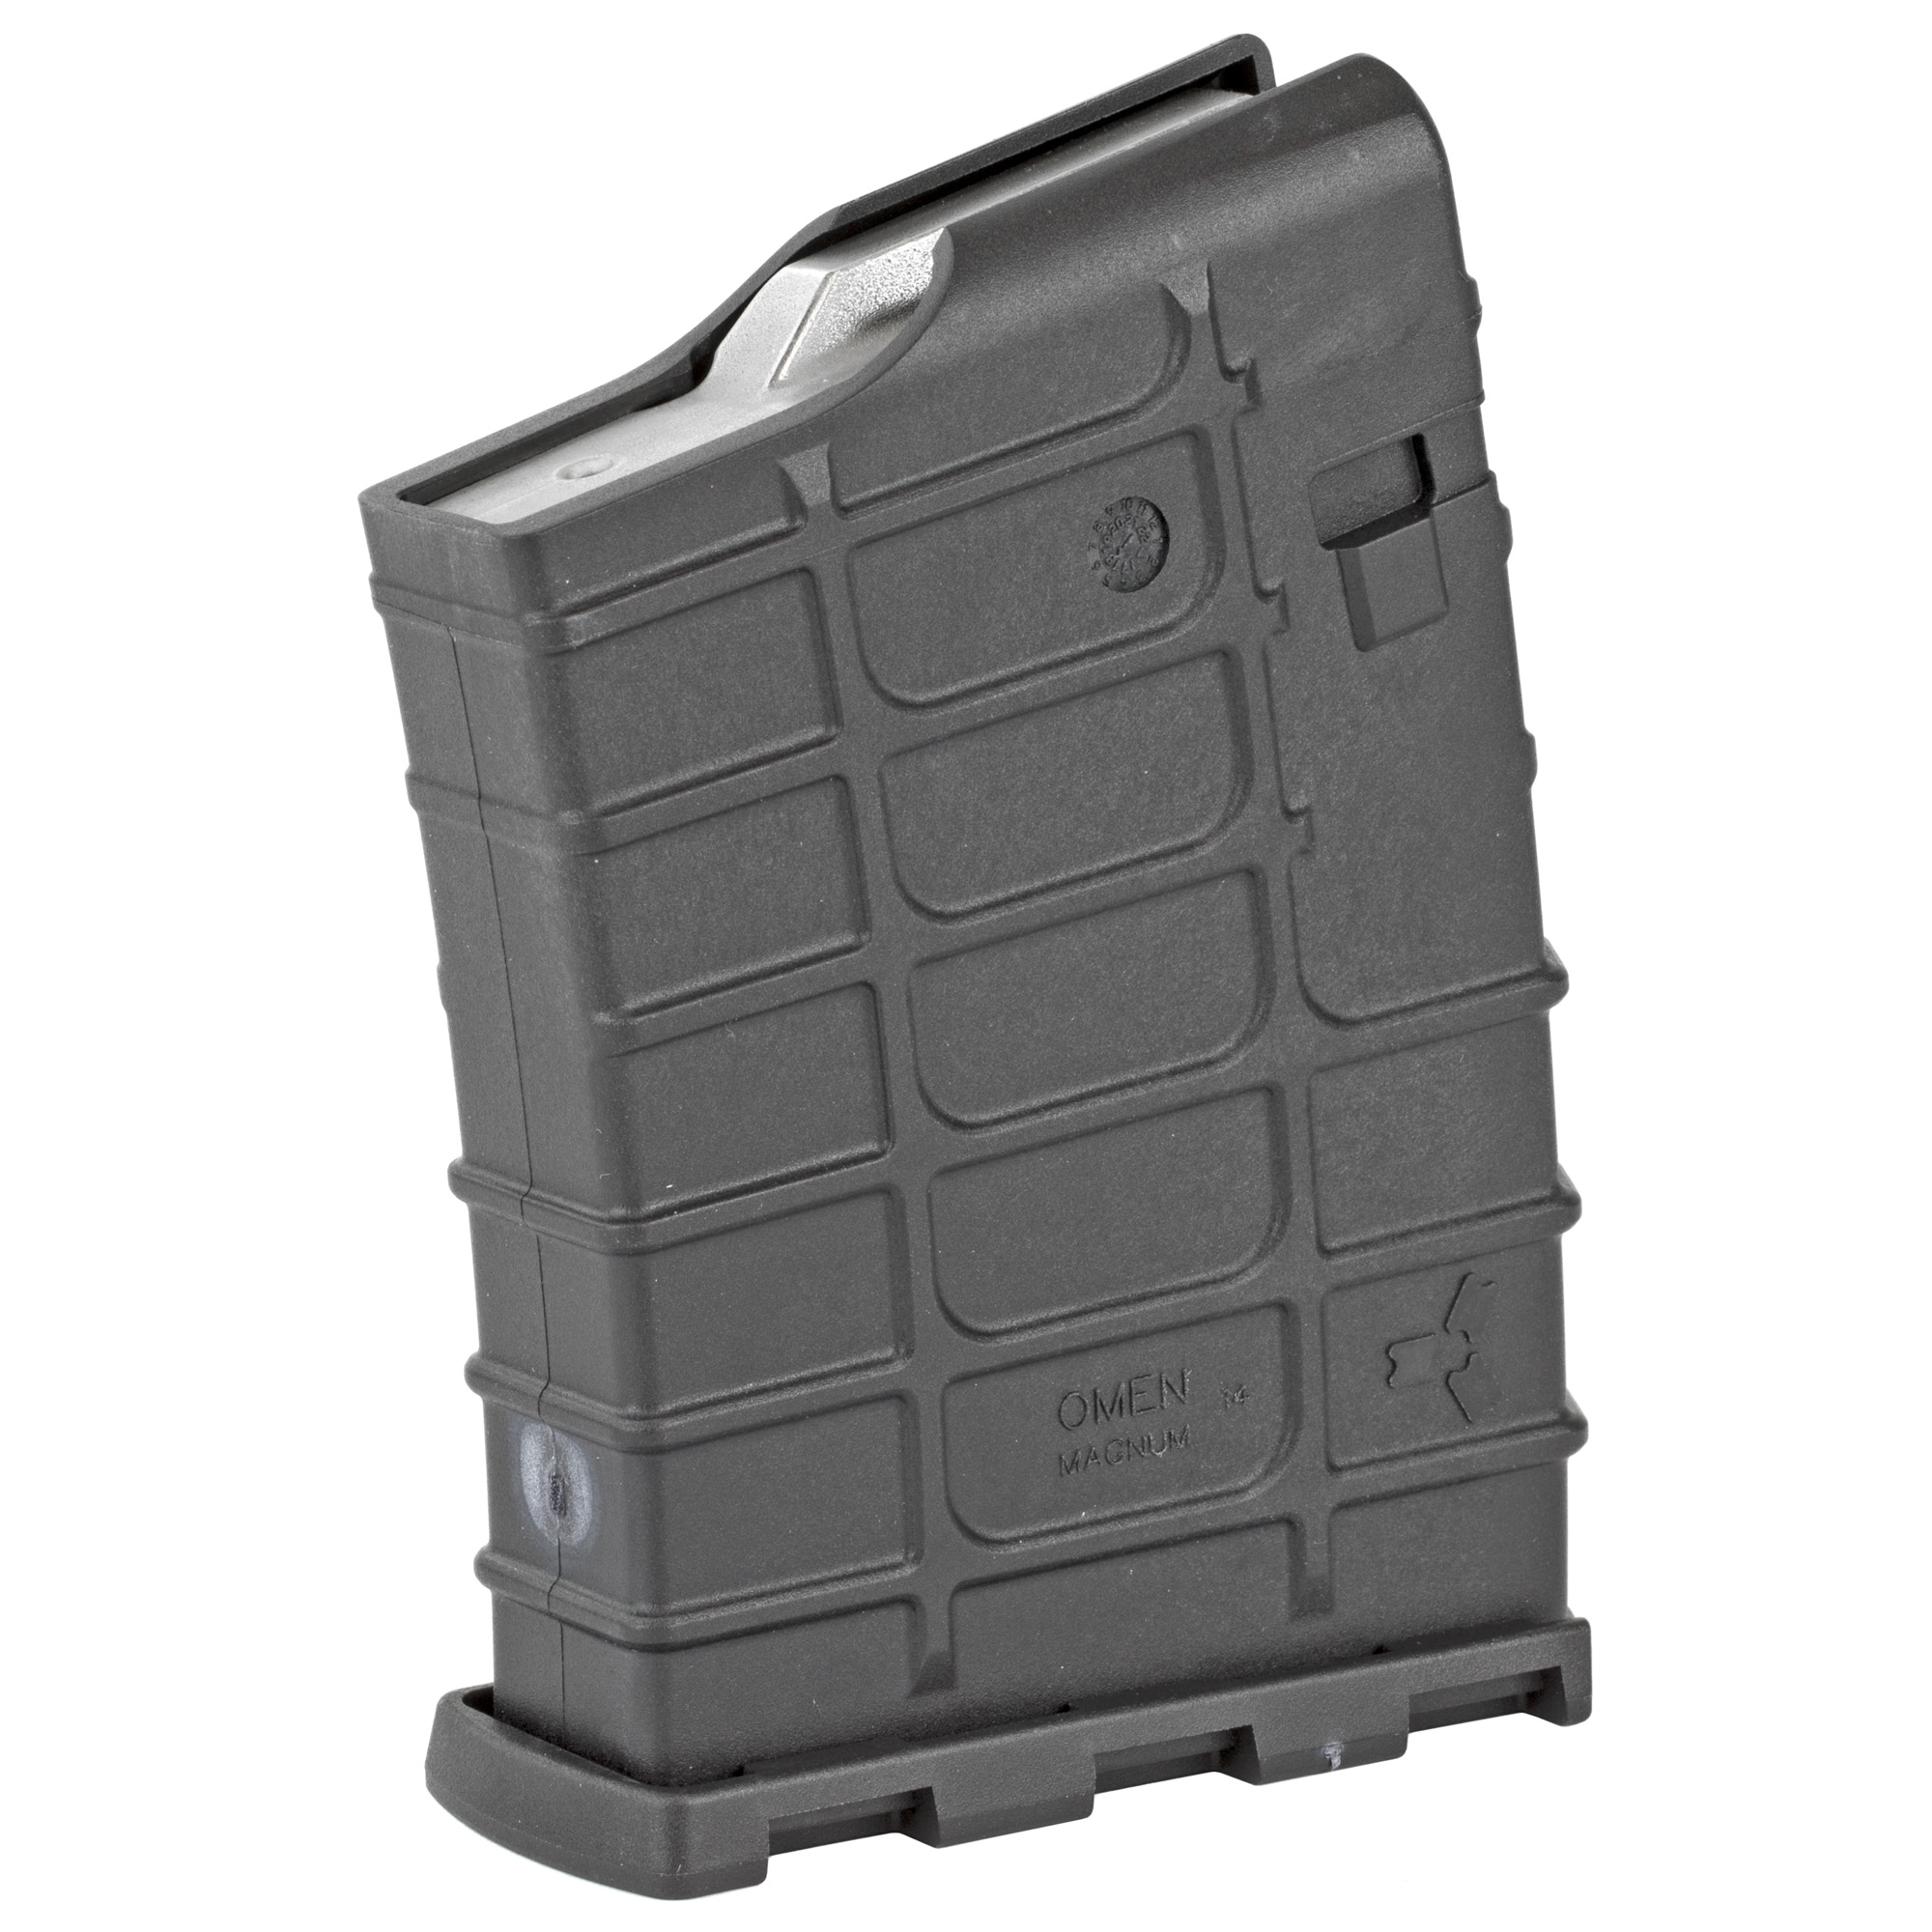 """This rugged polymer magazine was engineered from the ground up based on belted magnums. The magazine features an anti-tilt follower"""" 10 round capacity and stainless steel spring. The magazine disassembles easily for cleaning. Weighs 7 ounces unloaded. Cartridges that can be used: .300 Winchester Magnum"""" 7mm Remington Magnum and .338 Winchester Magnum. Magazine can accommodate a cartridge up to 3.50"""" overall cartridge length."""